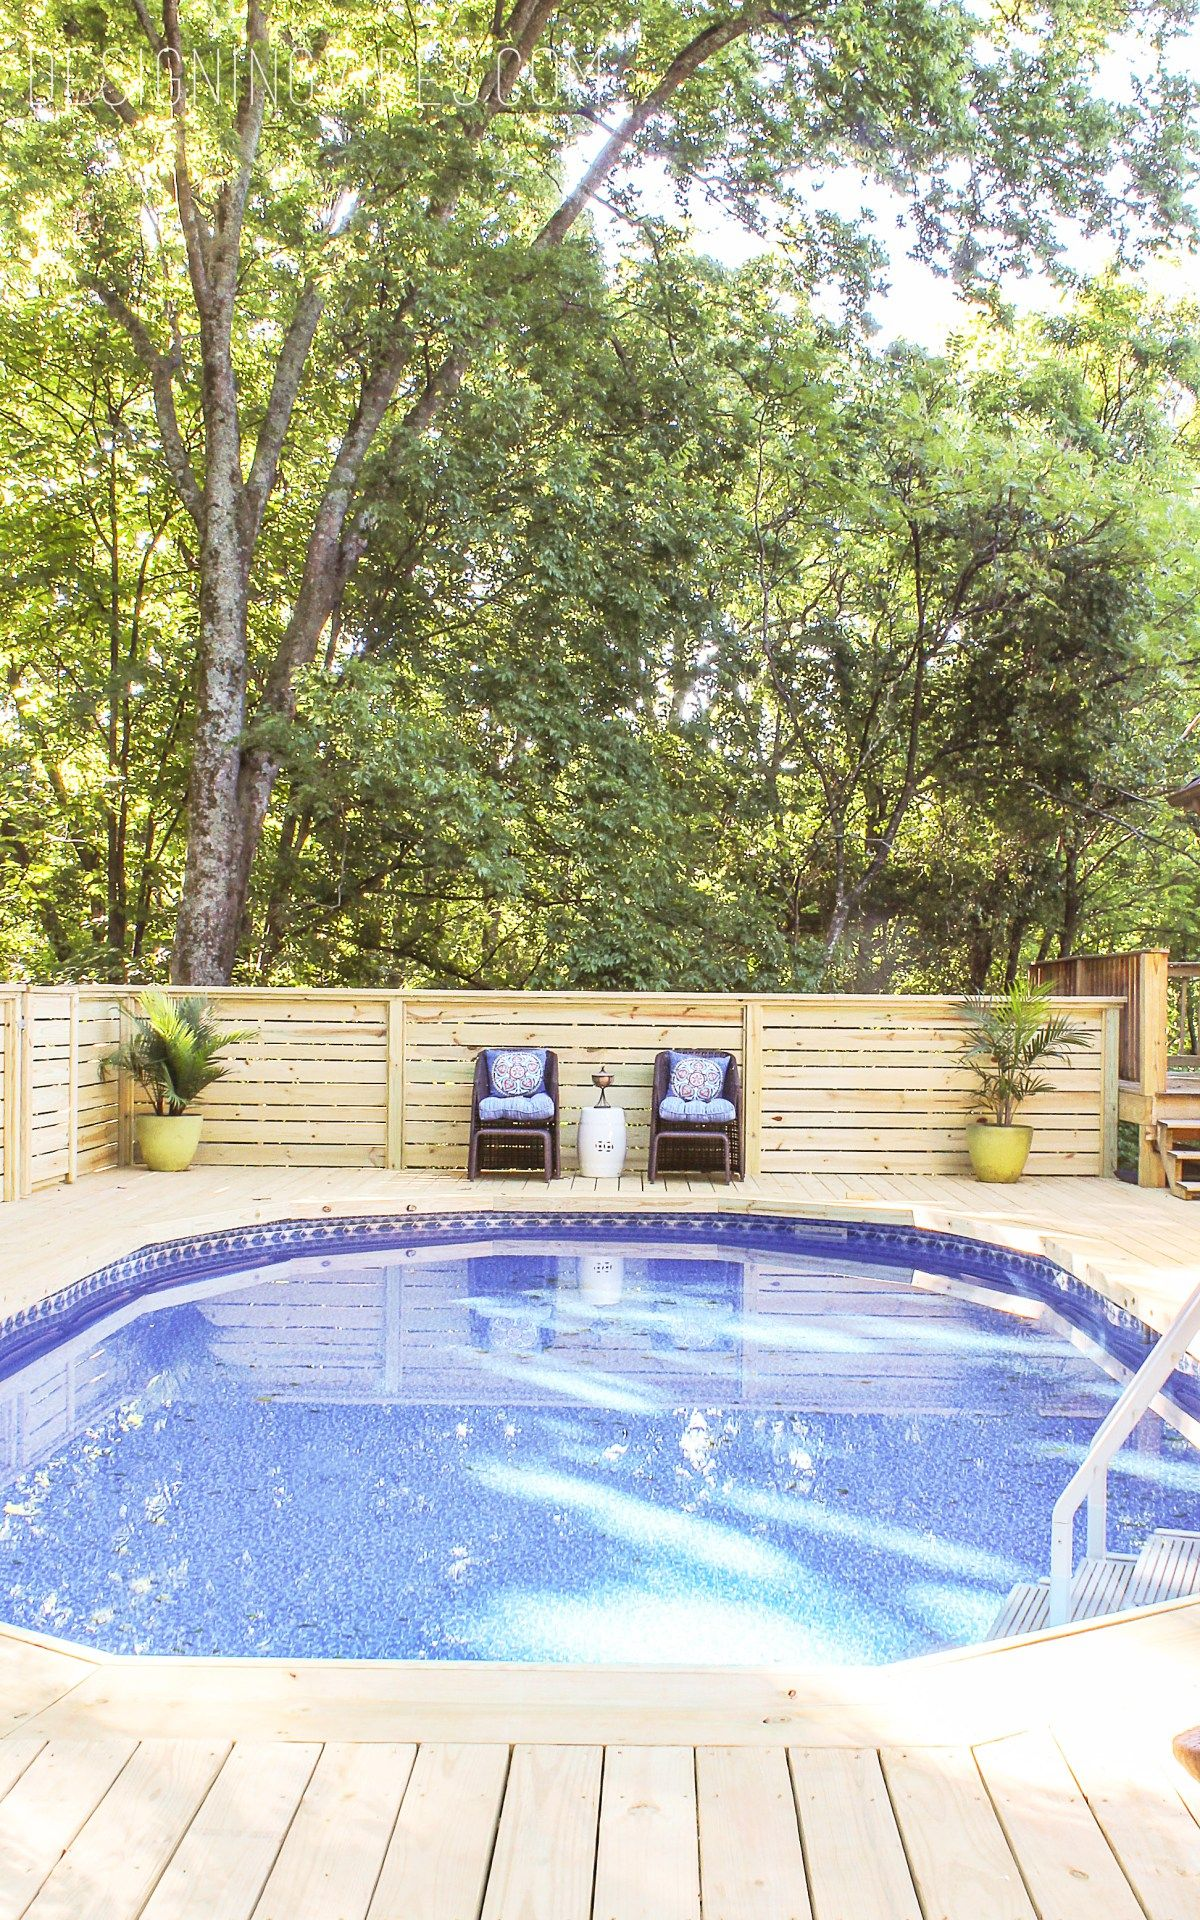 How to make an above ground pool look inground diy pool - Luxury above ground pools ...